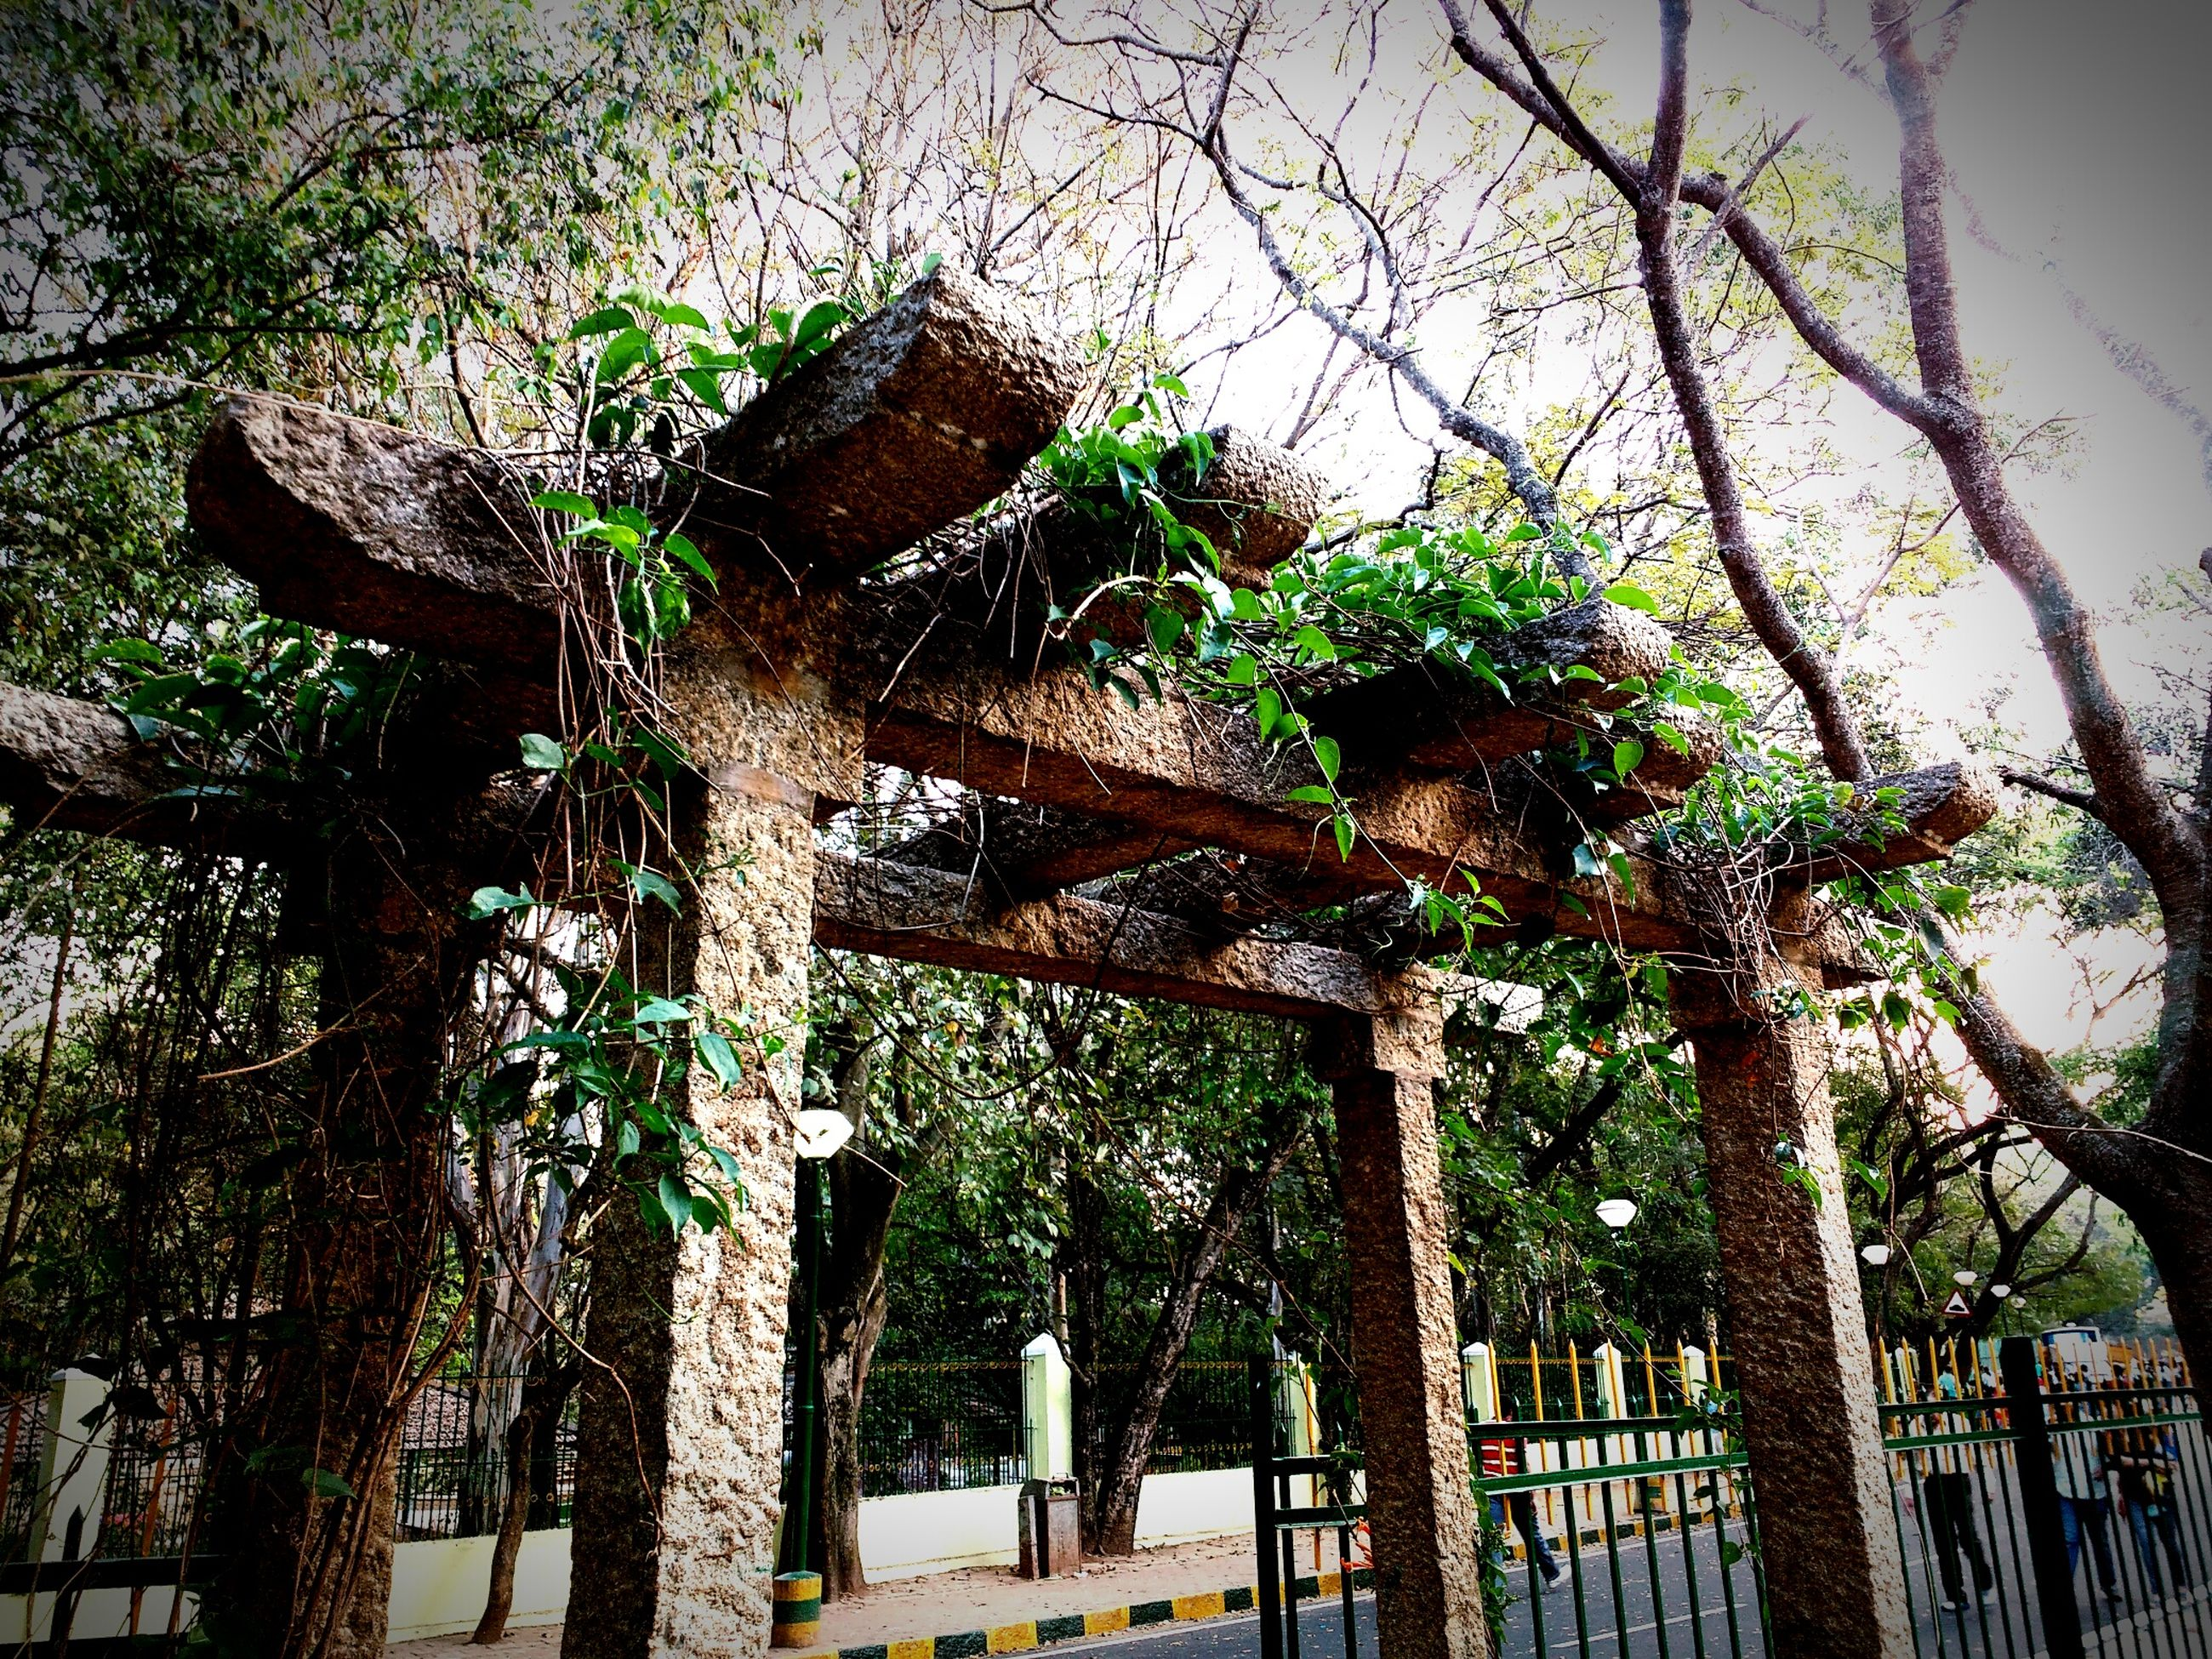 tree, low angle view, growth, wood - material, fence, branch, green color, plant, tree trunk, sky, built structure, nature, day, outdoors, no people, architecture, old, gate, railing, tranquility